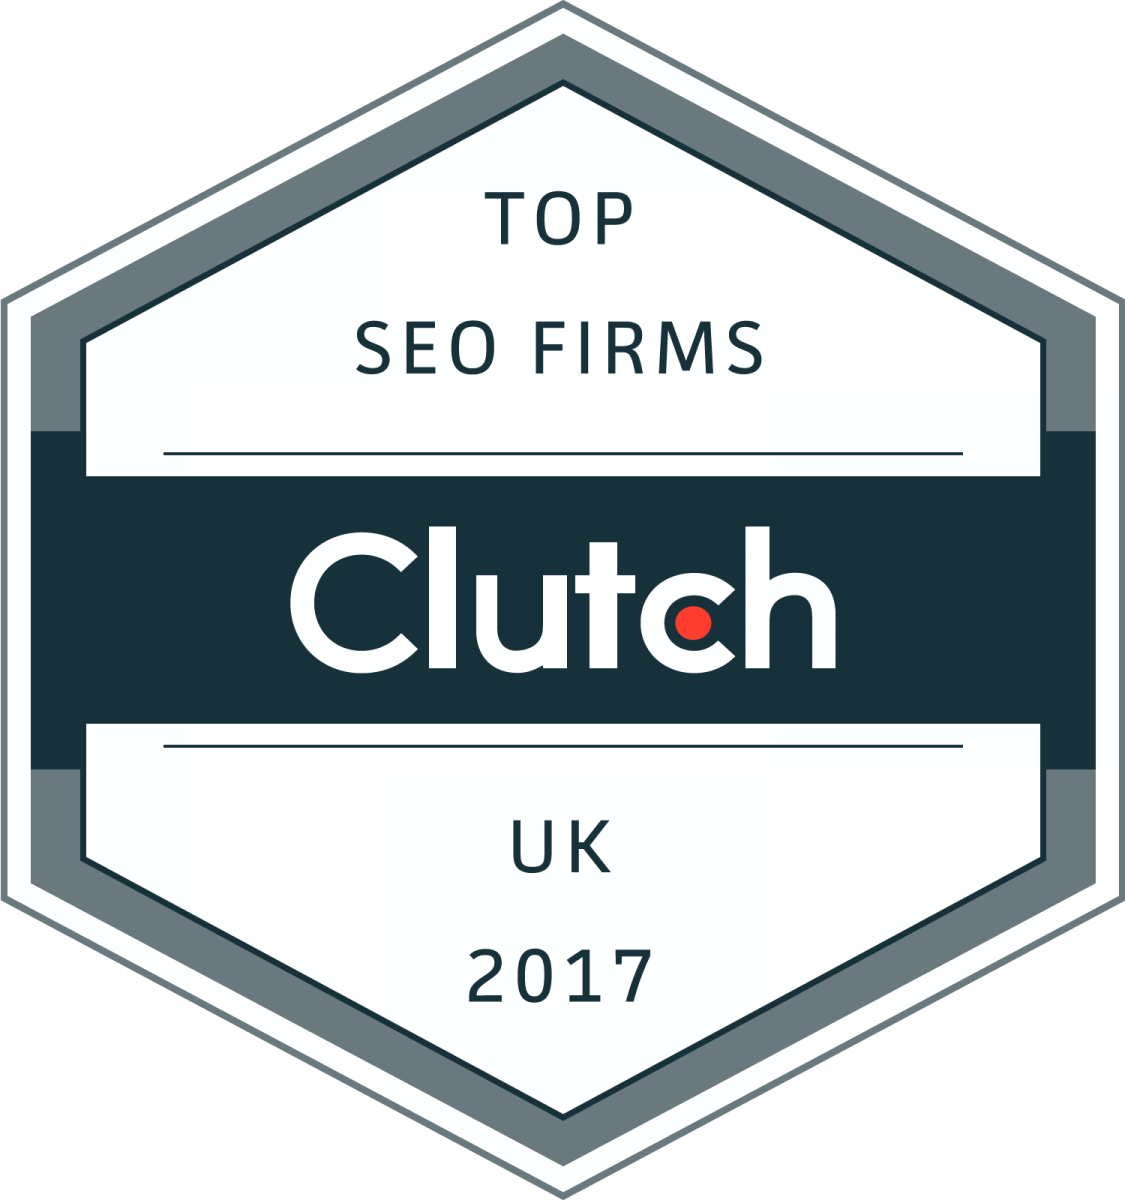 Top SEO Firm